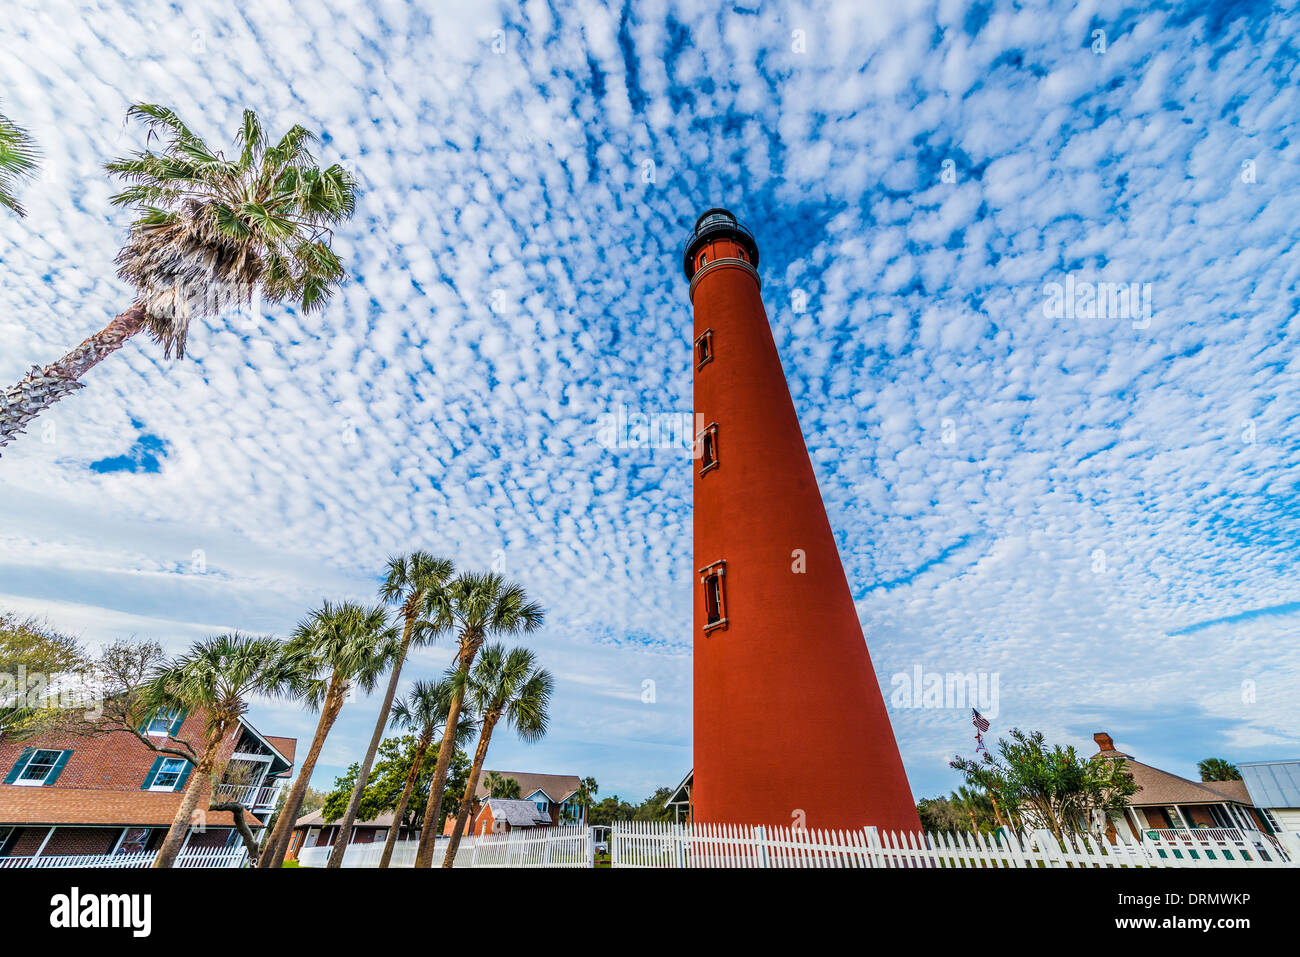 Ponce Inlet Lighthouse Florida Lighthouse Point Park Buttermilk clouds along Atlantic Ocean Built in 1867 Tallest - Stock Image